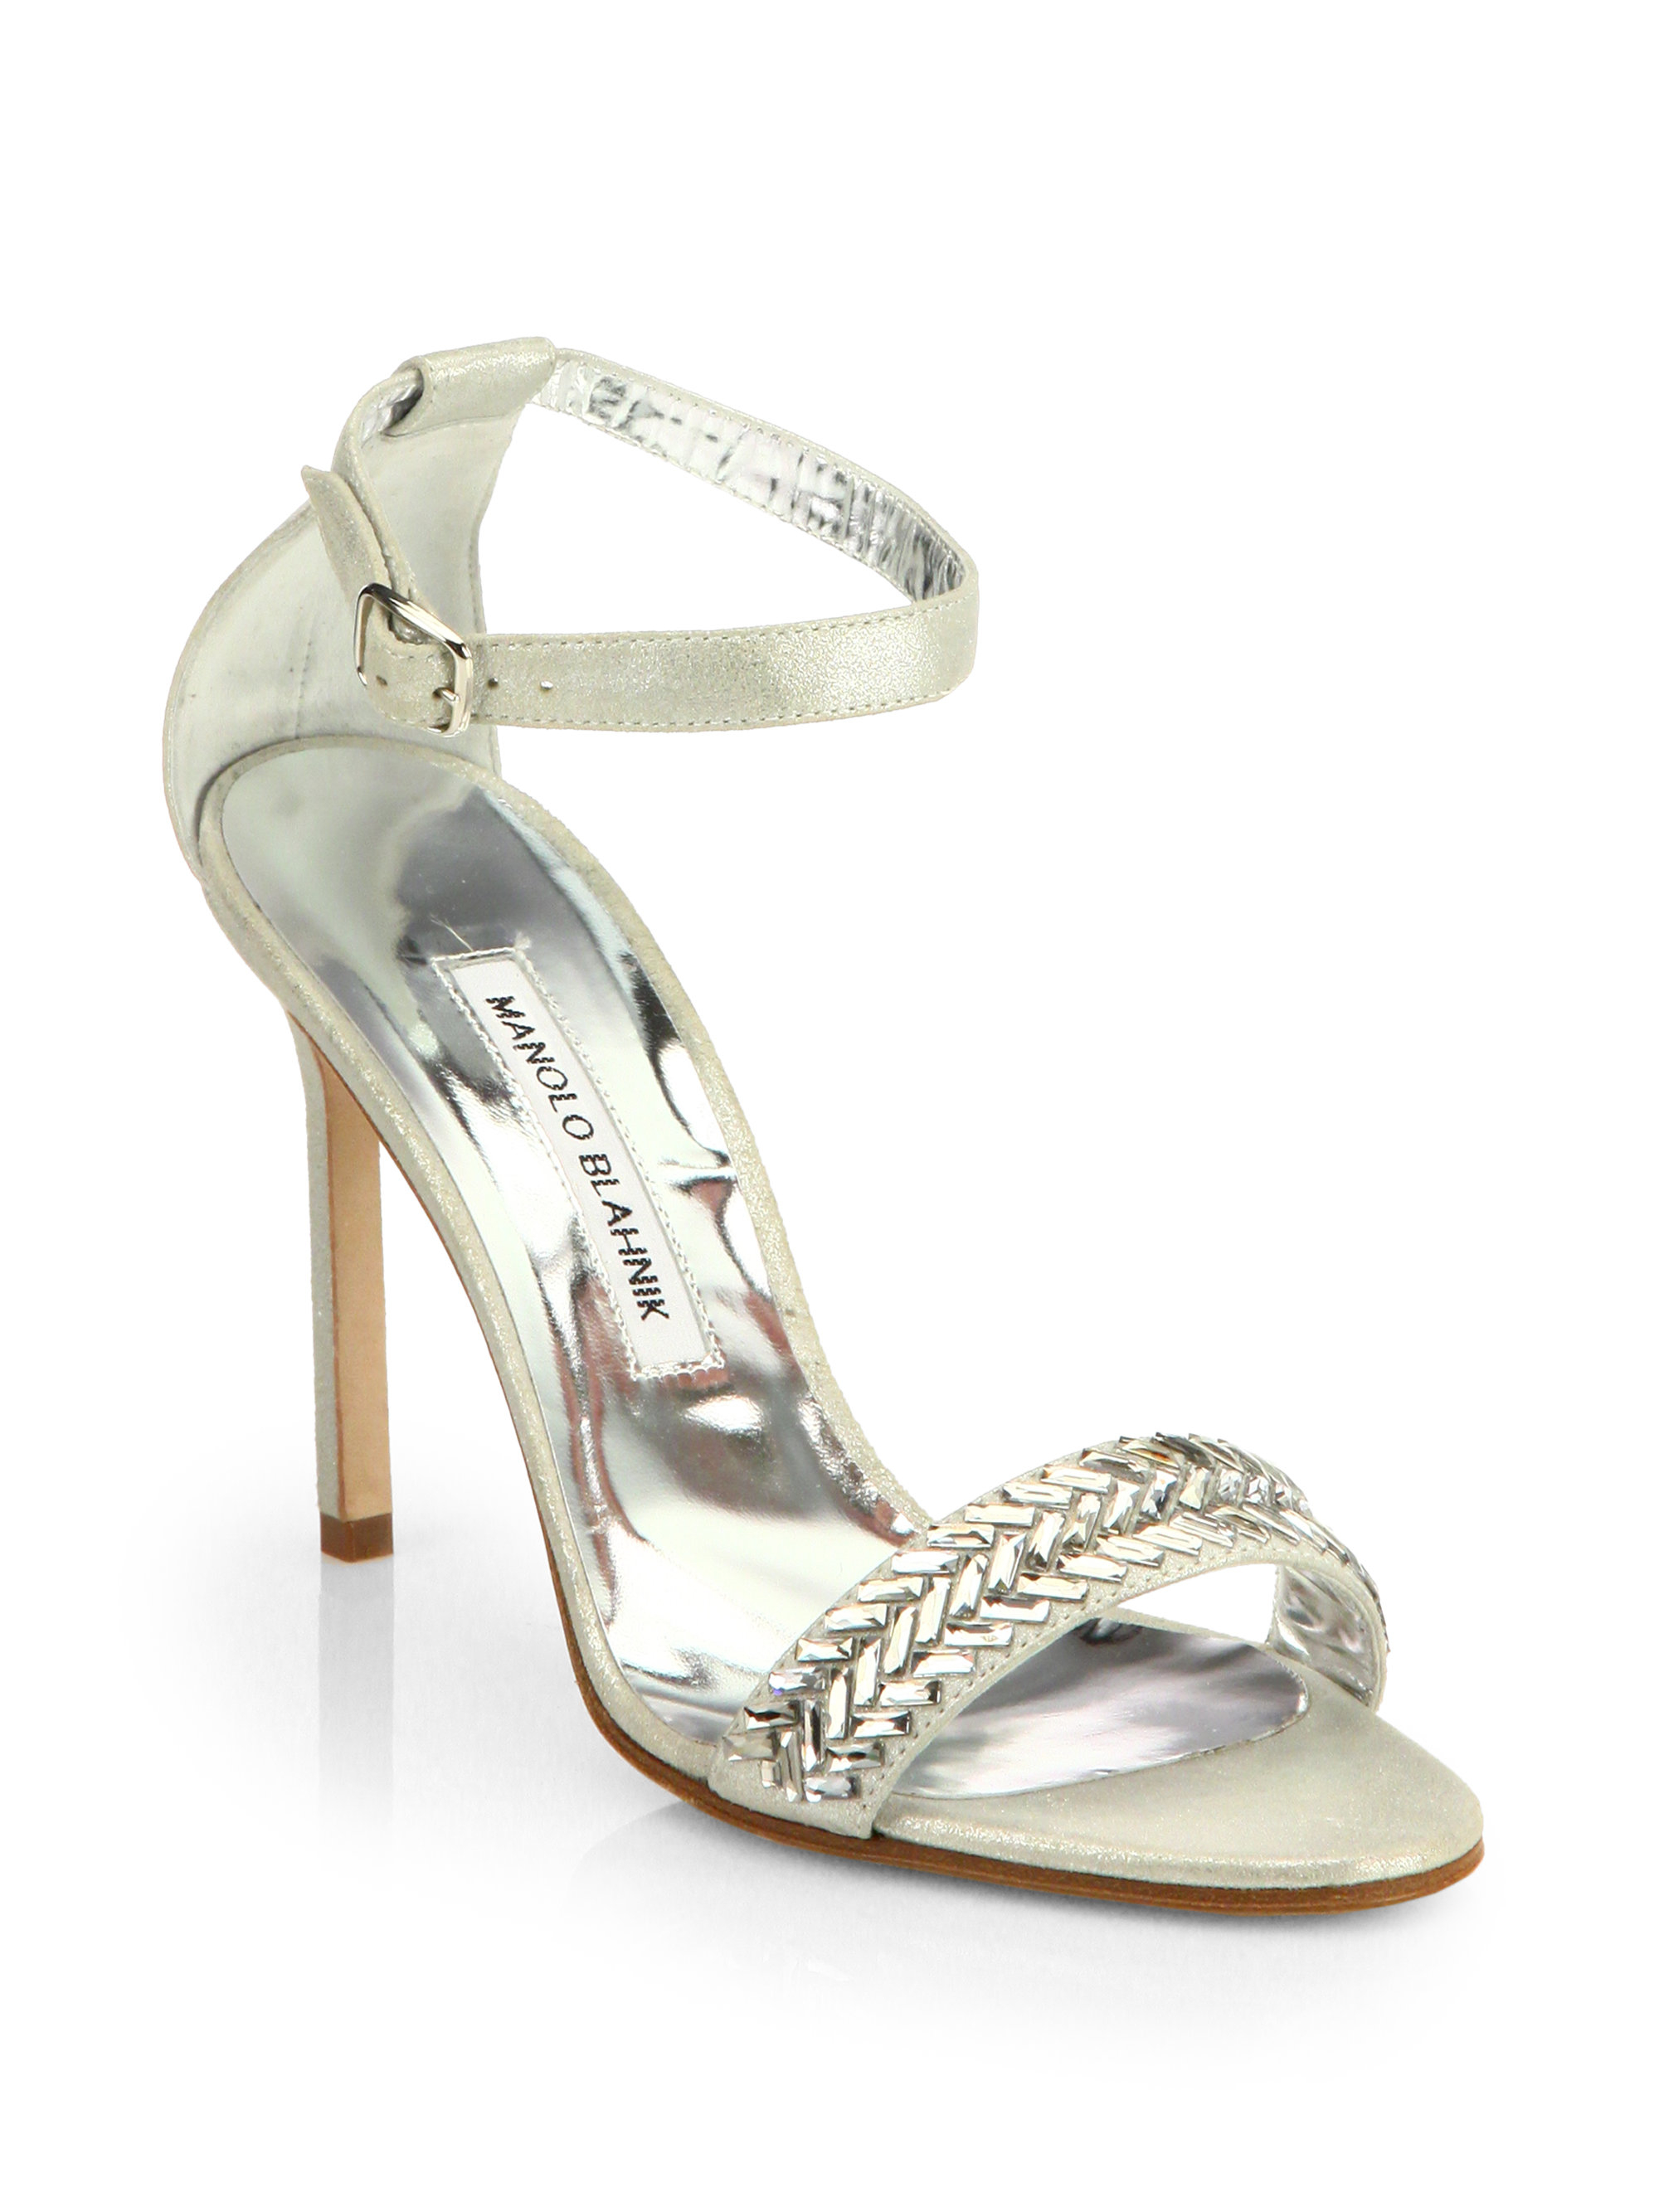 Manolo Blahnik Metallic Ankle Strap Sandals official cheap price cheap price original discount get to buy efVIdD8Ov